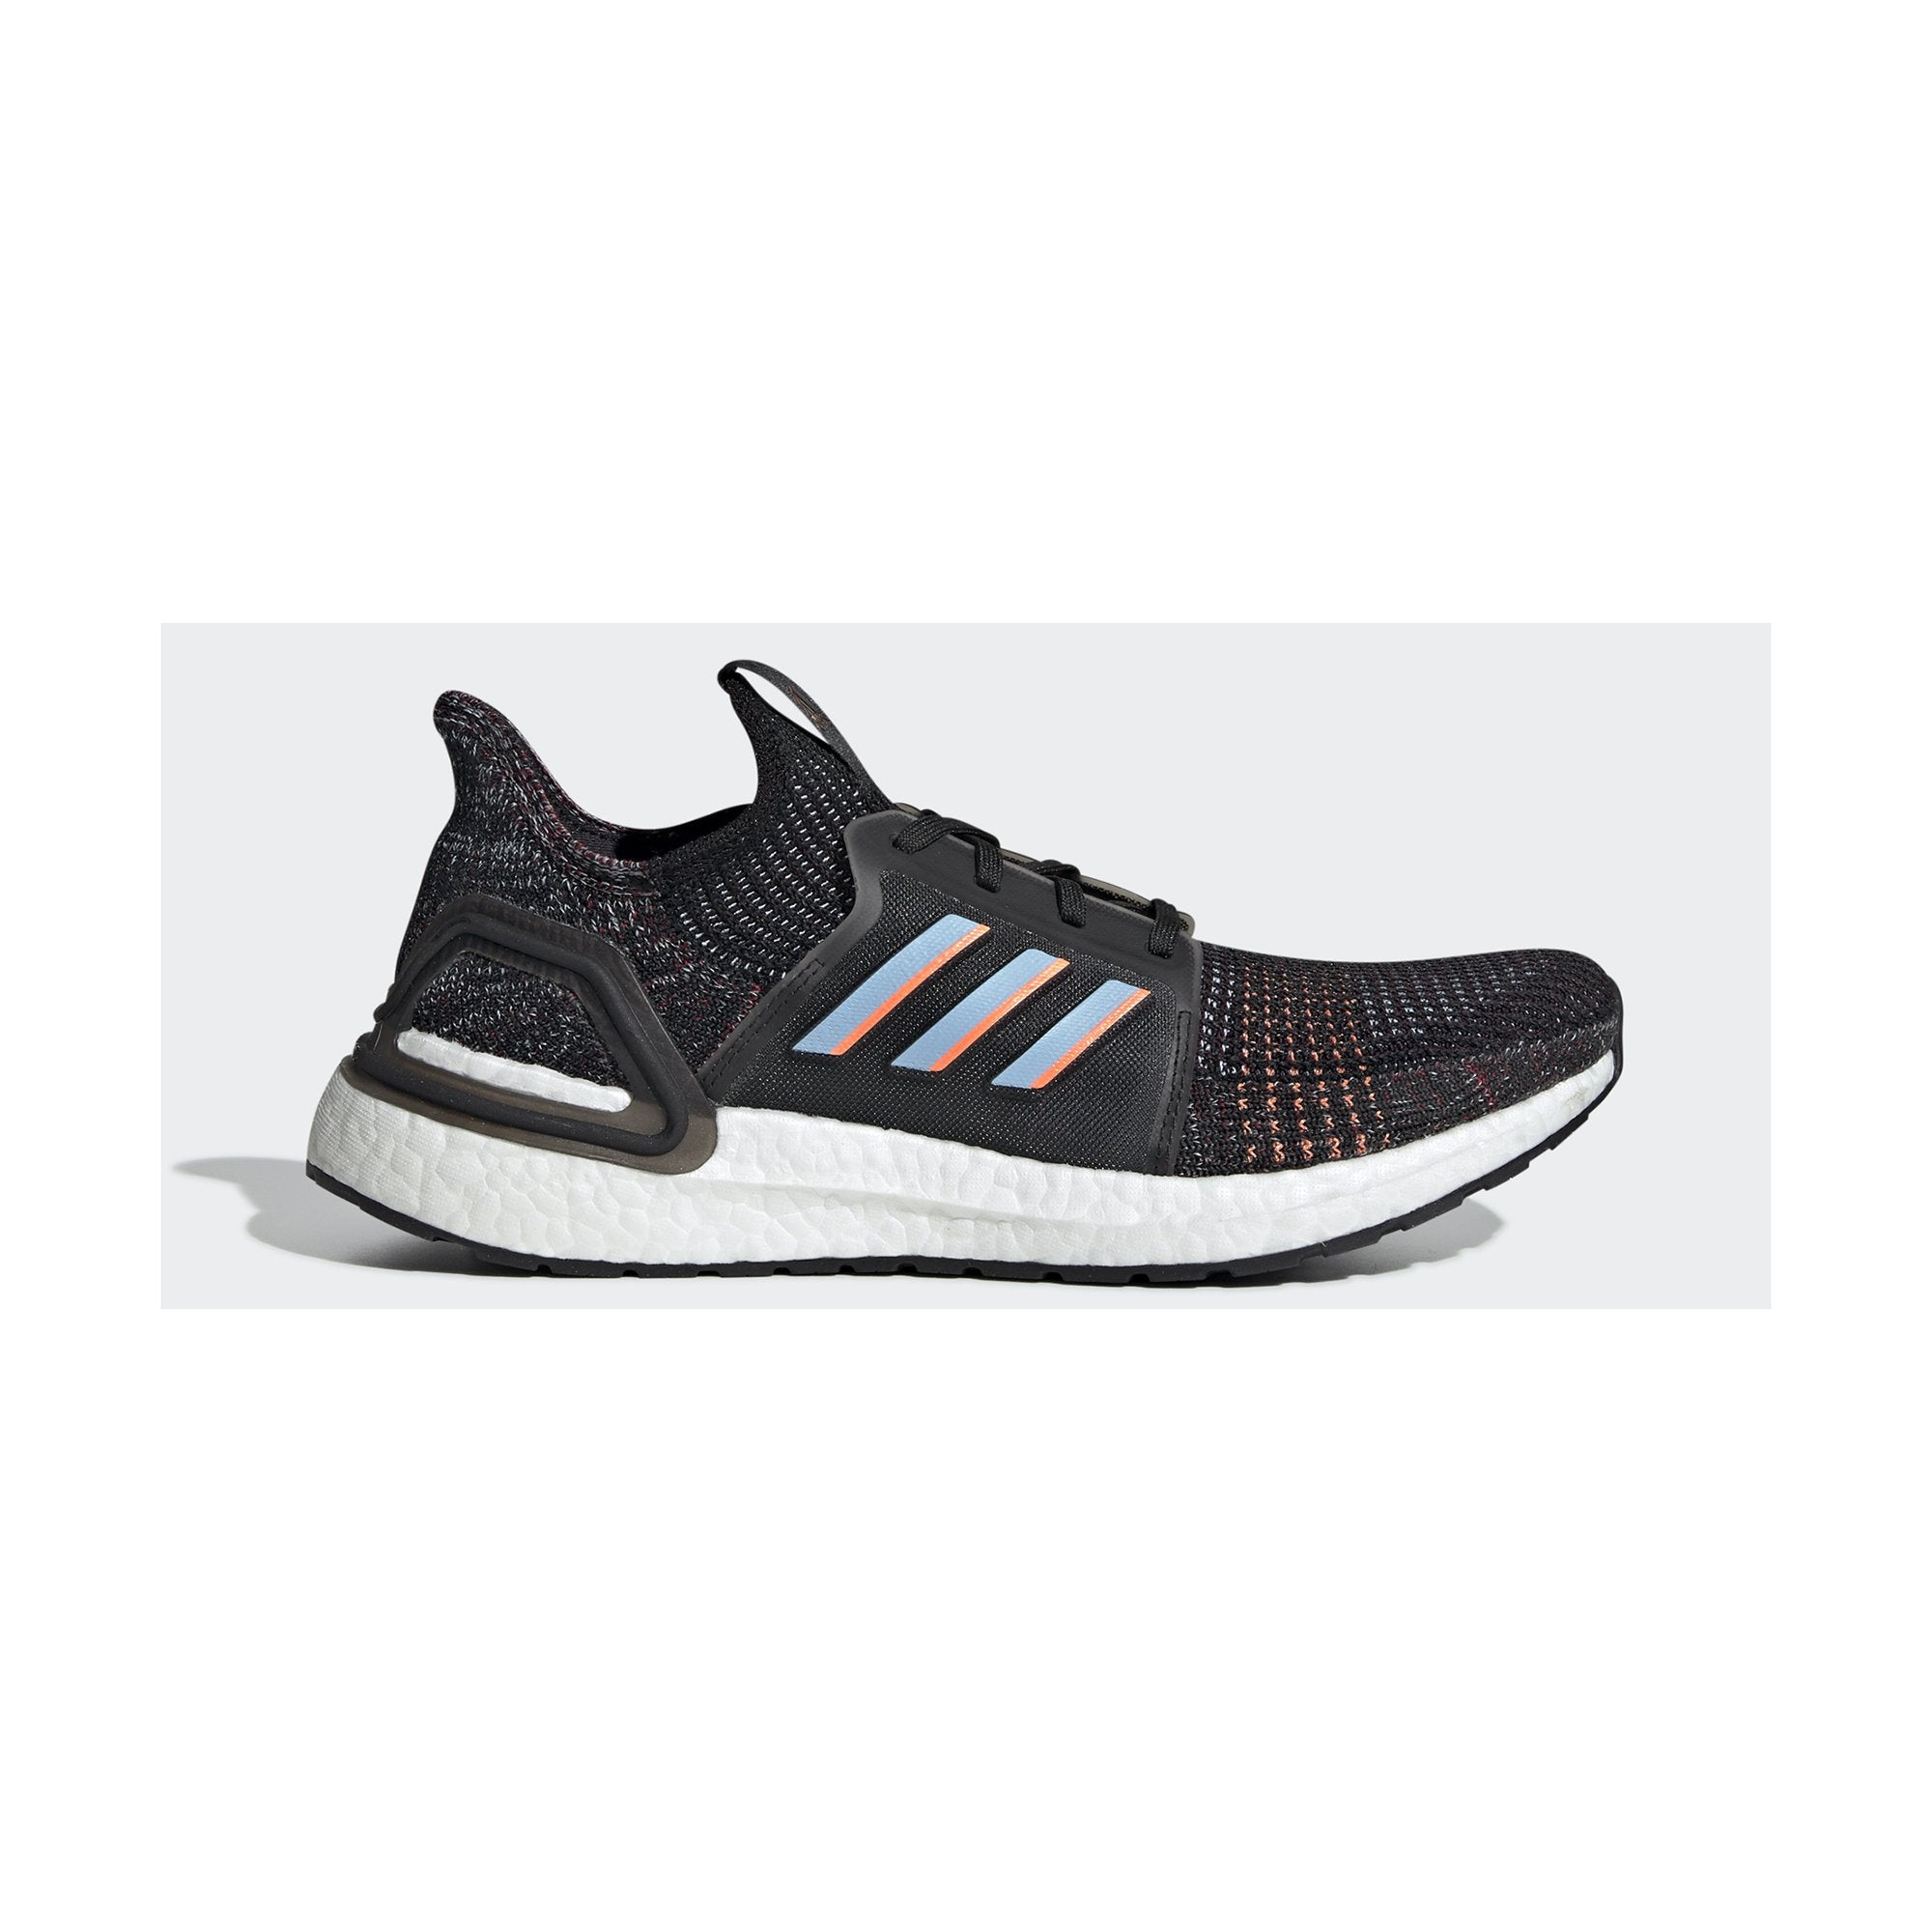 2ae87977770 Buy adidas Men Ultraboost 19 Running Shoes Online in Singapore | Royal  Sporting House